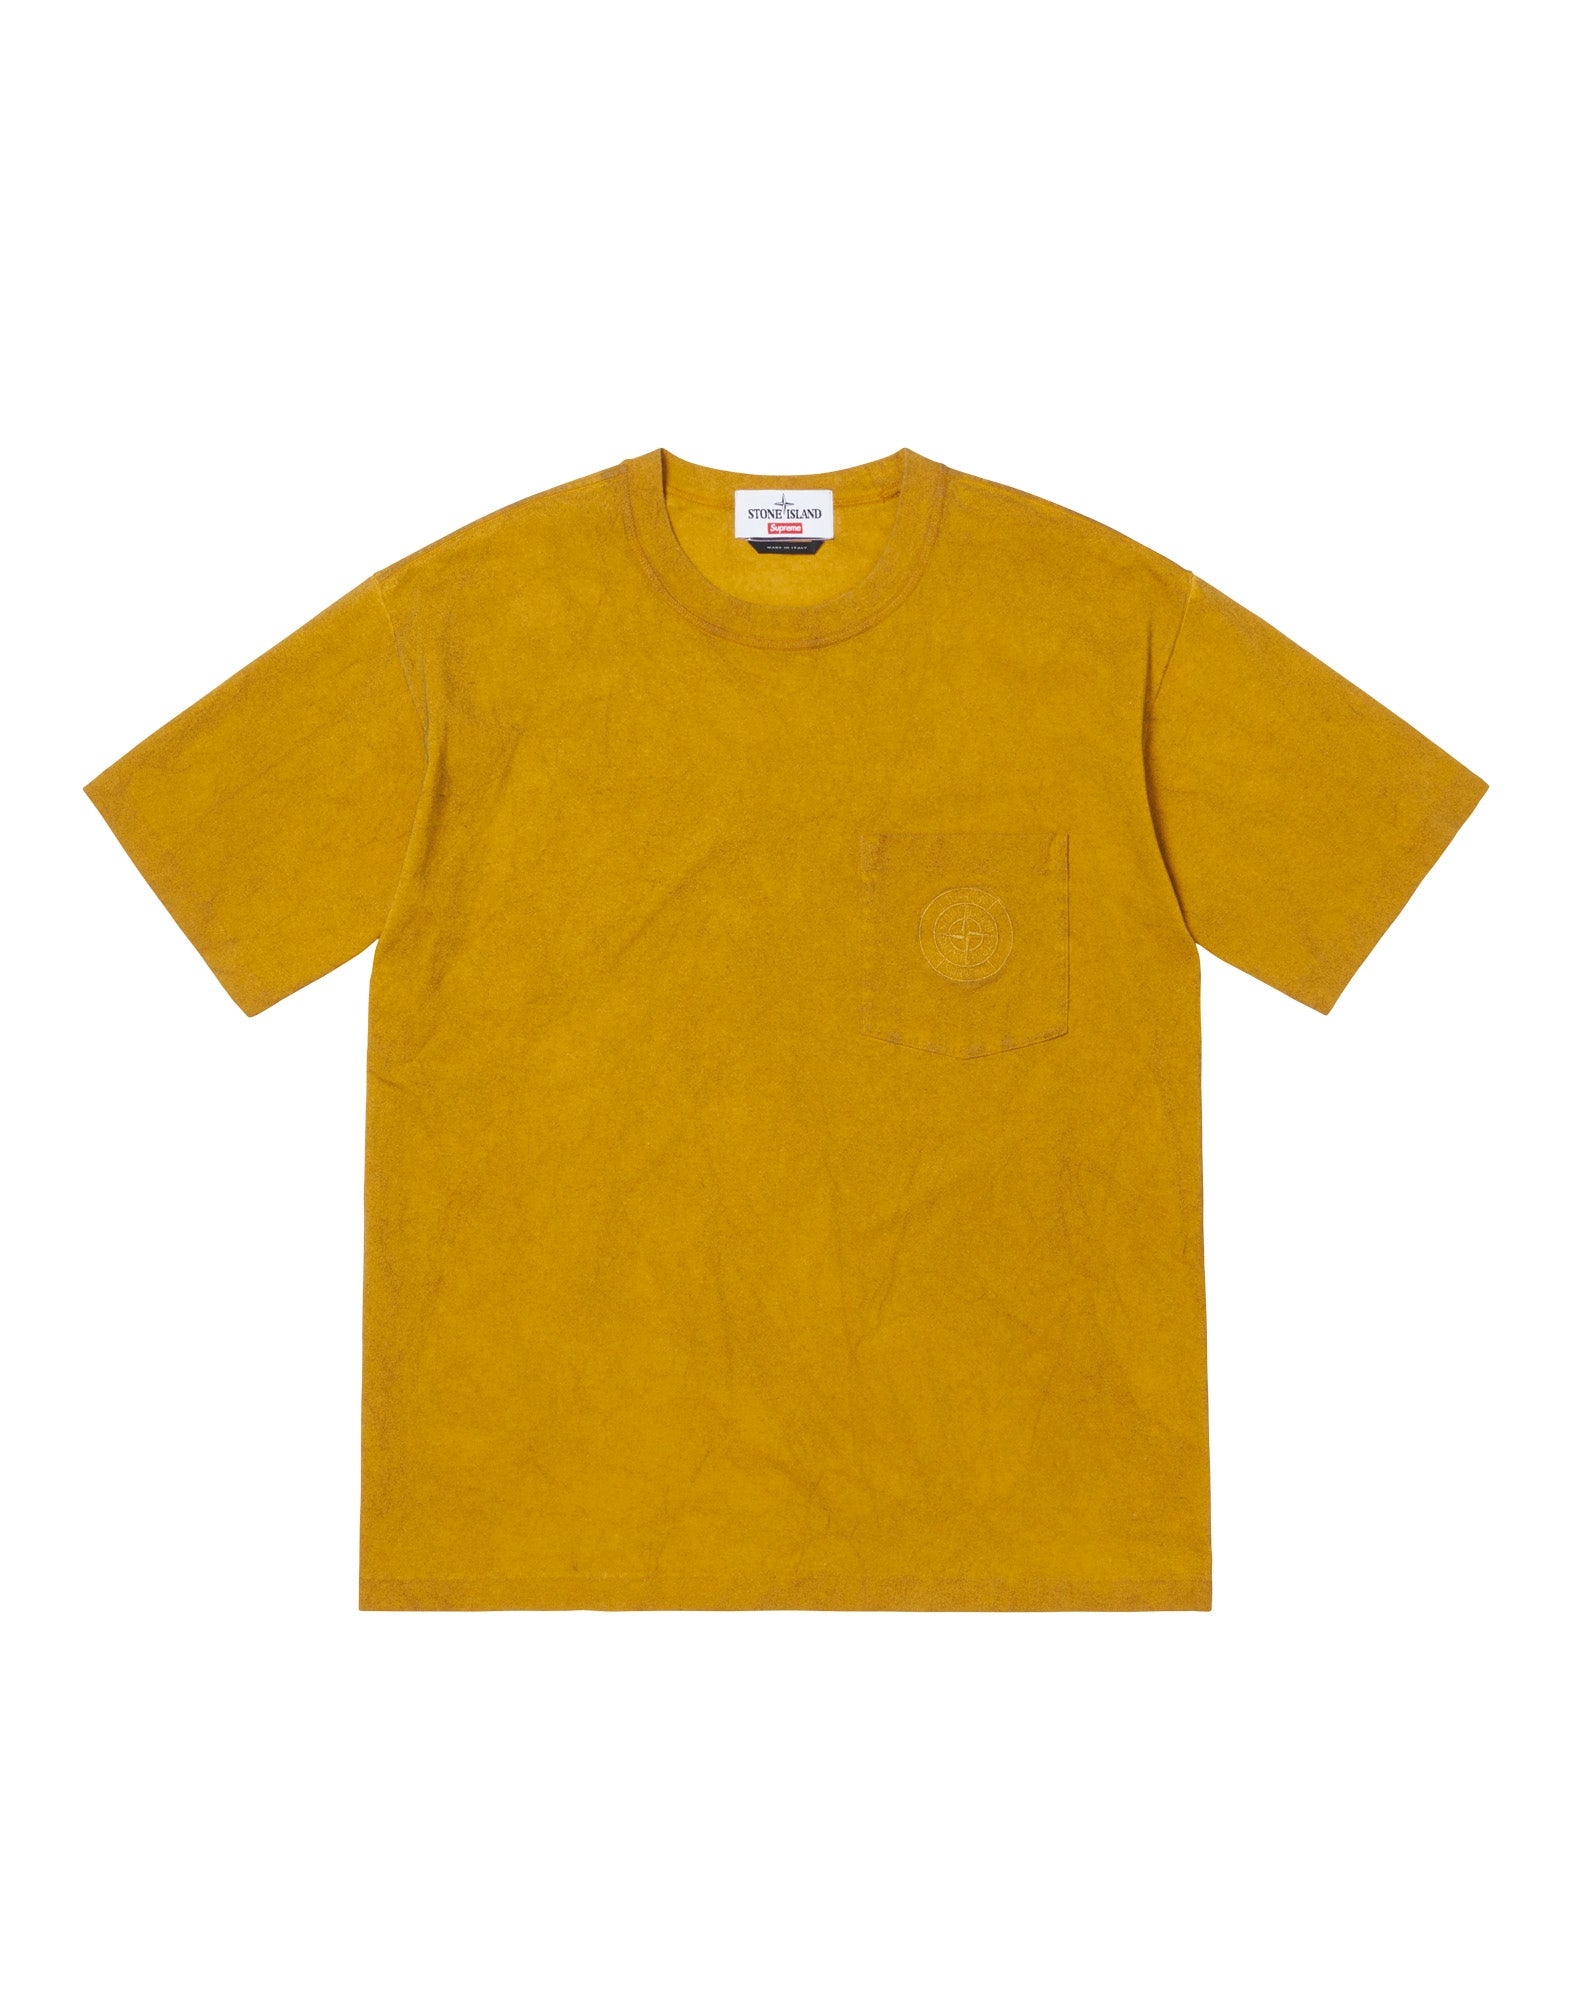 201S1 DUST COLOUR T-Shirt in Yellow